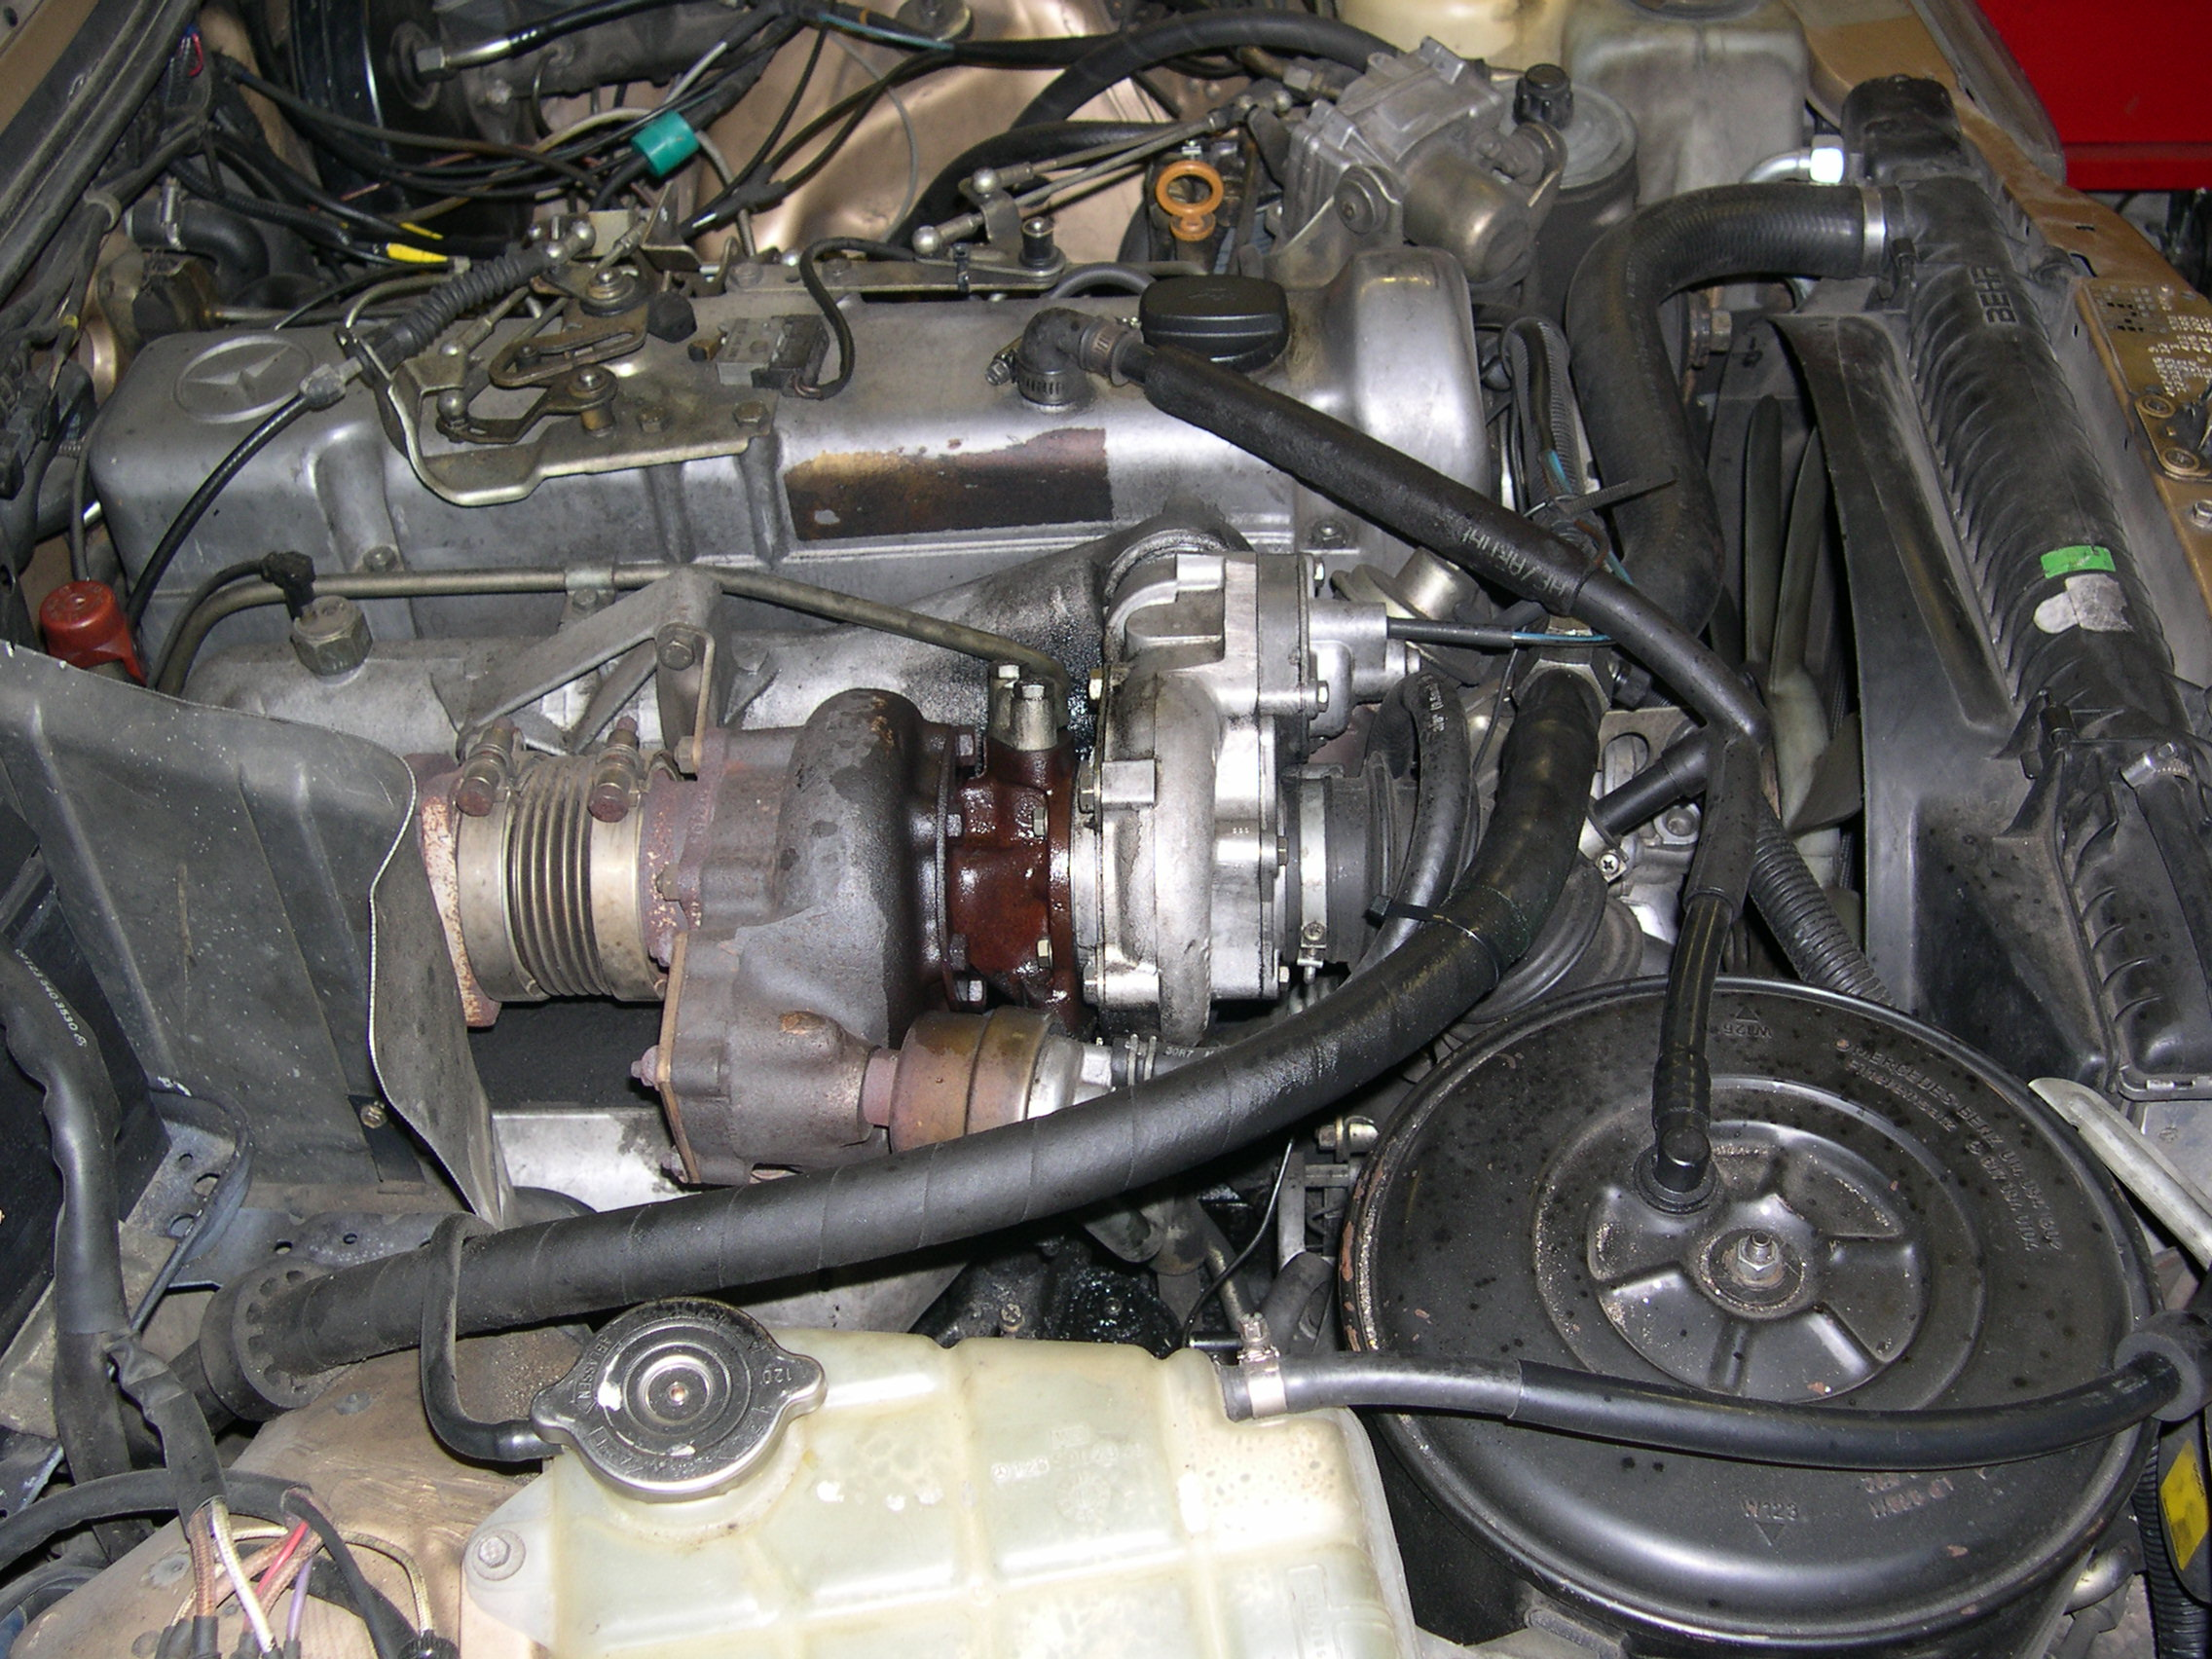 Identifying a late 1984 or 1985 617 Turbo Diesel Engine with